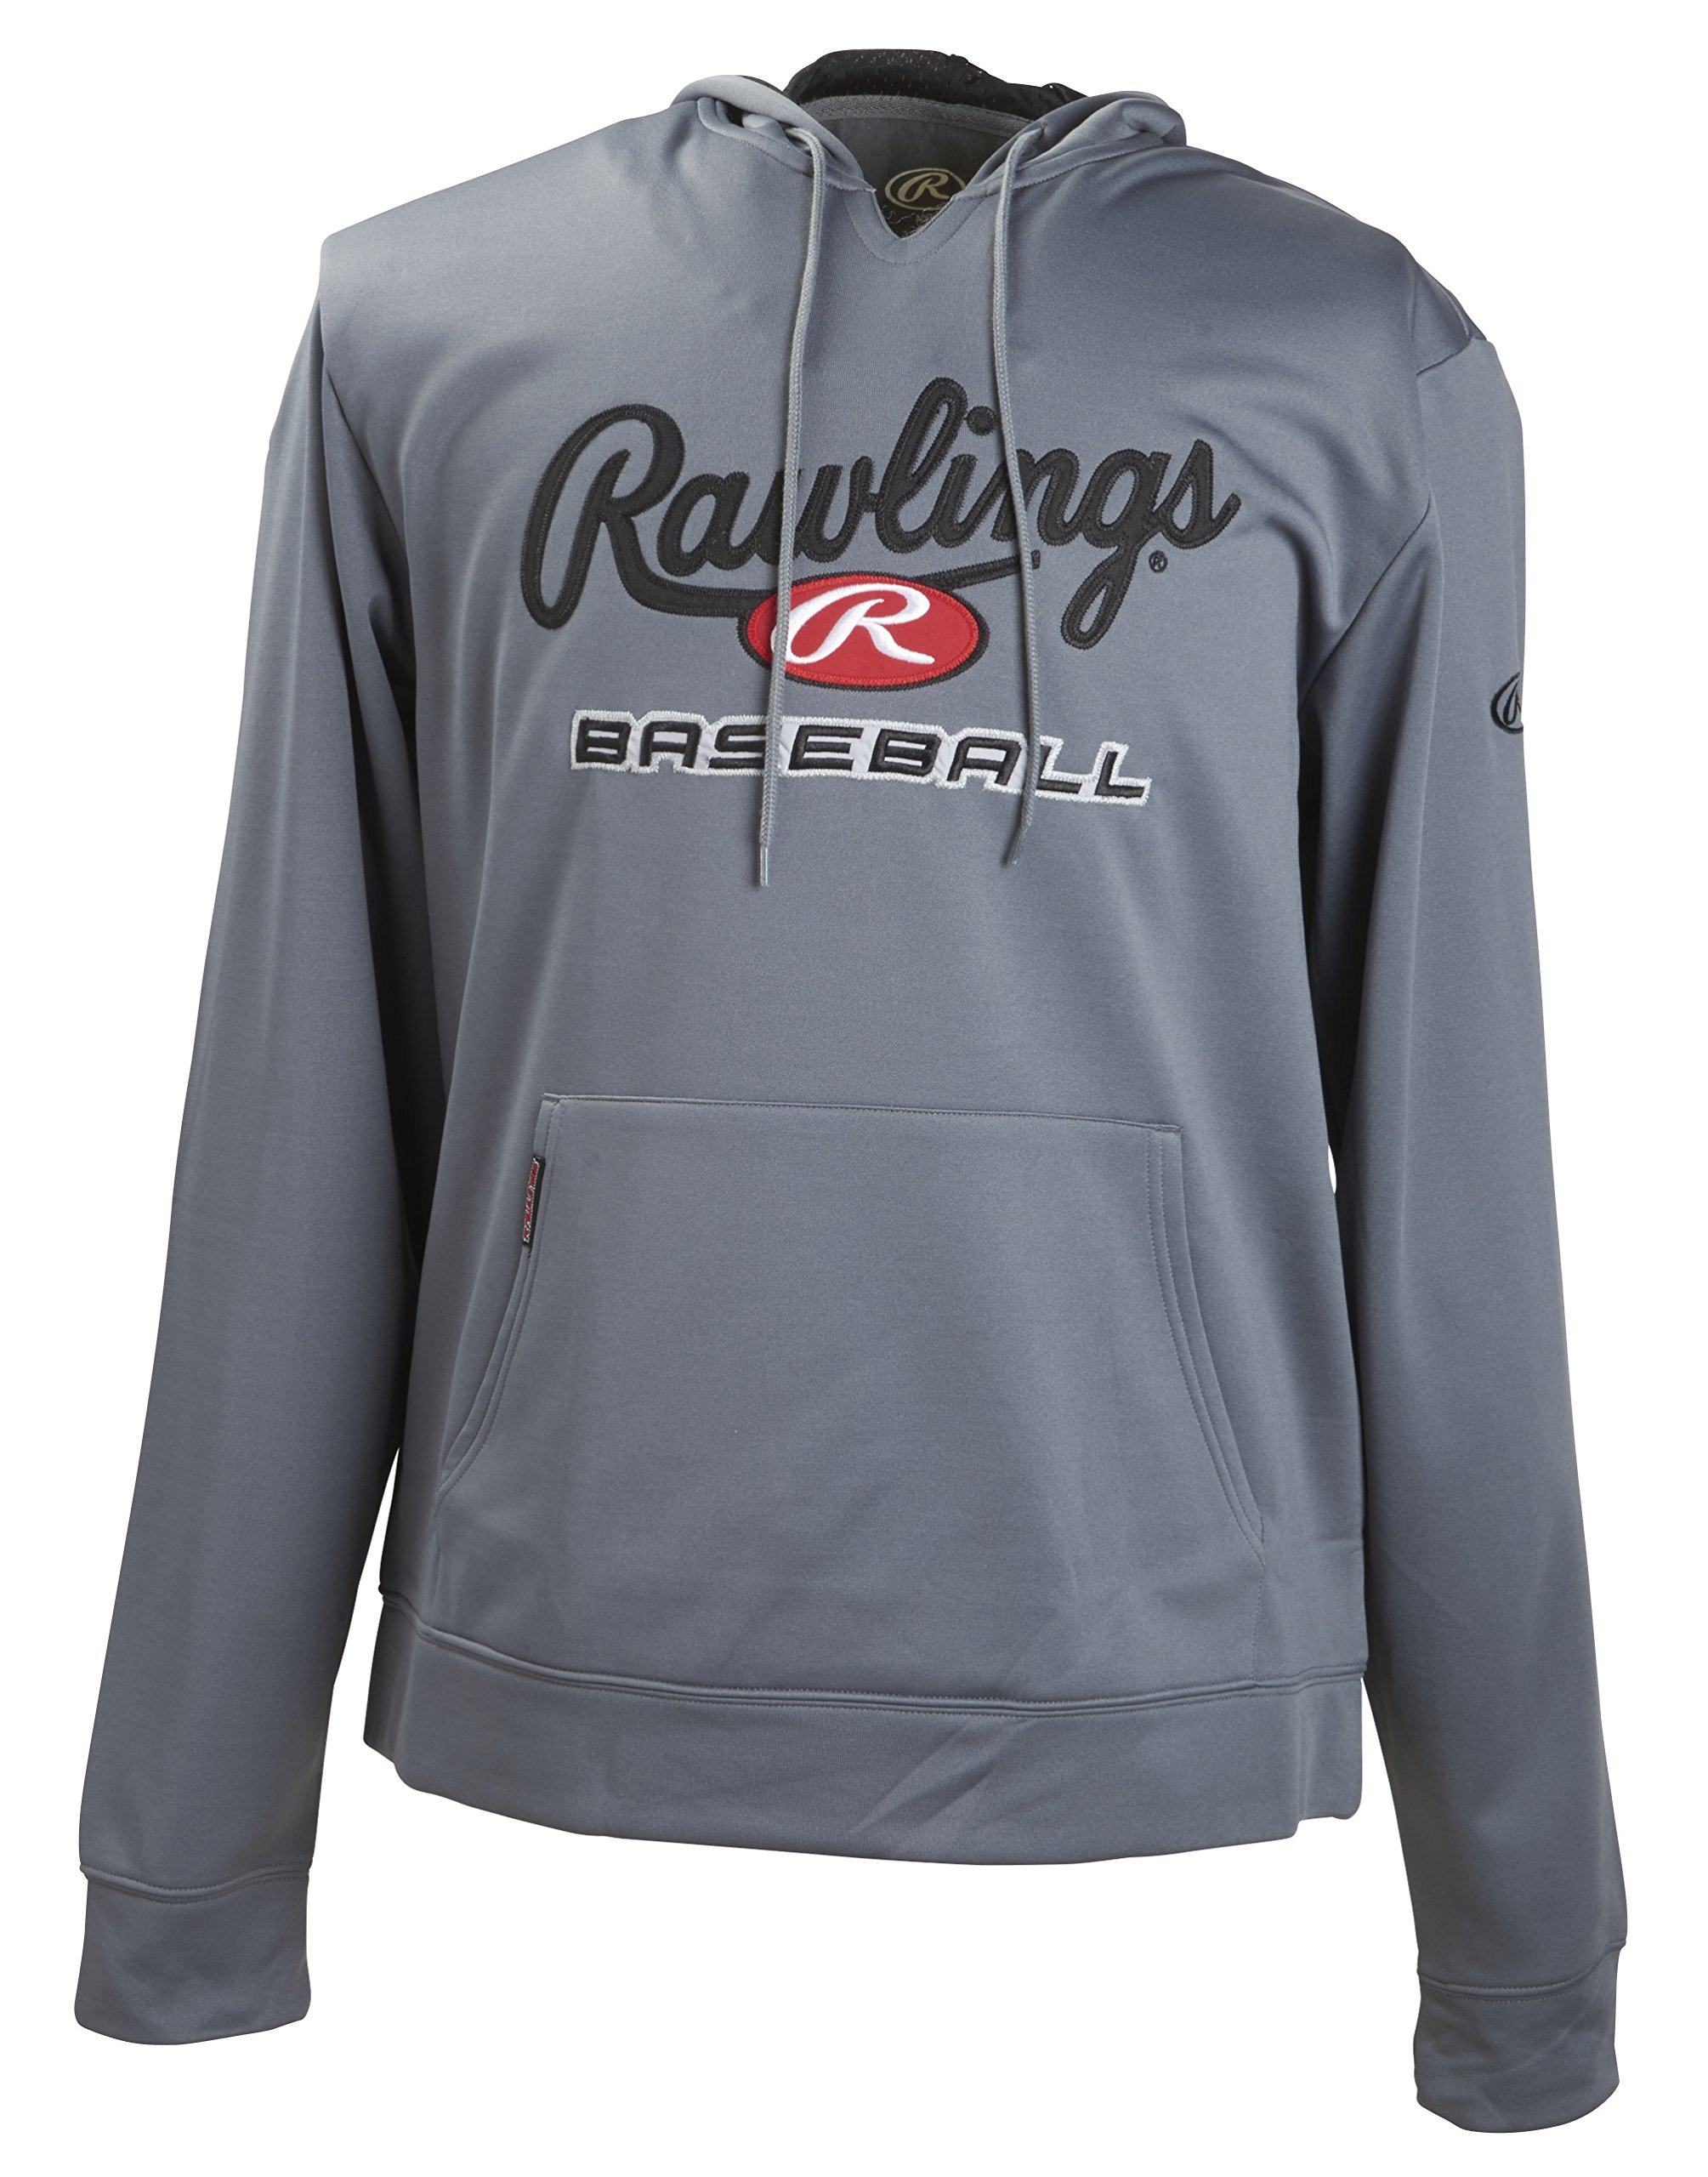 Rawlings Men's Fleece Hoodie, Graphite, Medium by Rawlings (Image #1)